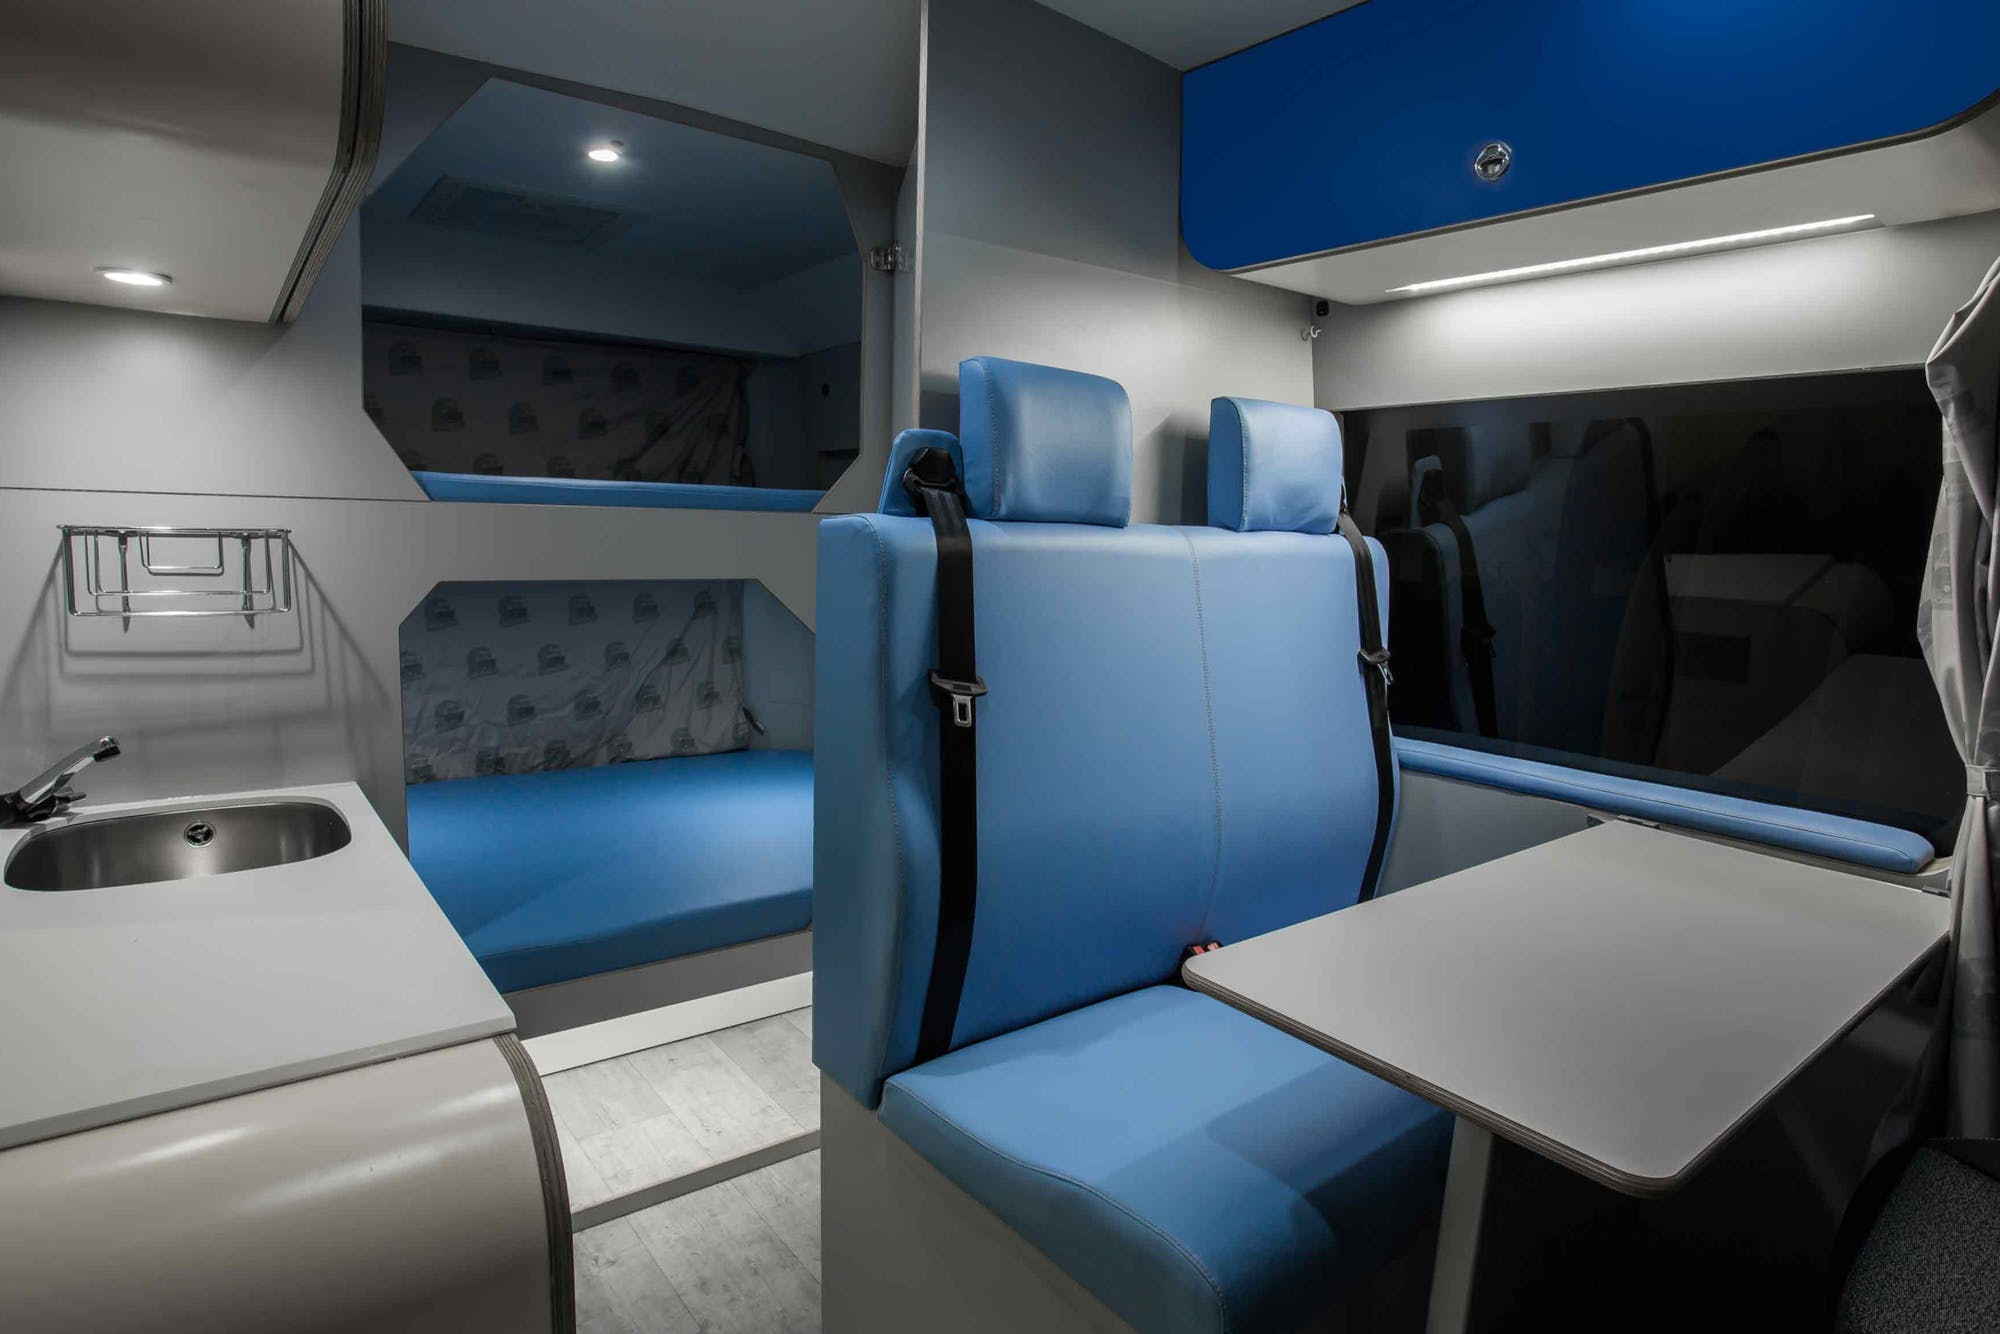 Indie Campers' Active Model inside view with beds